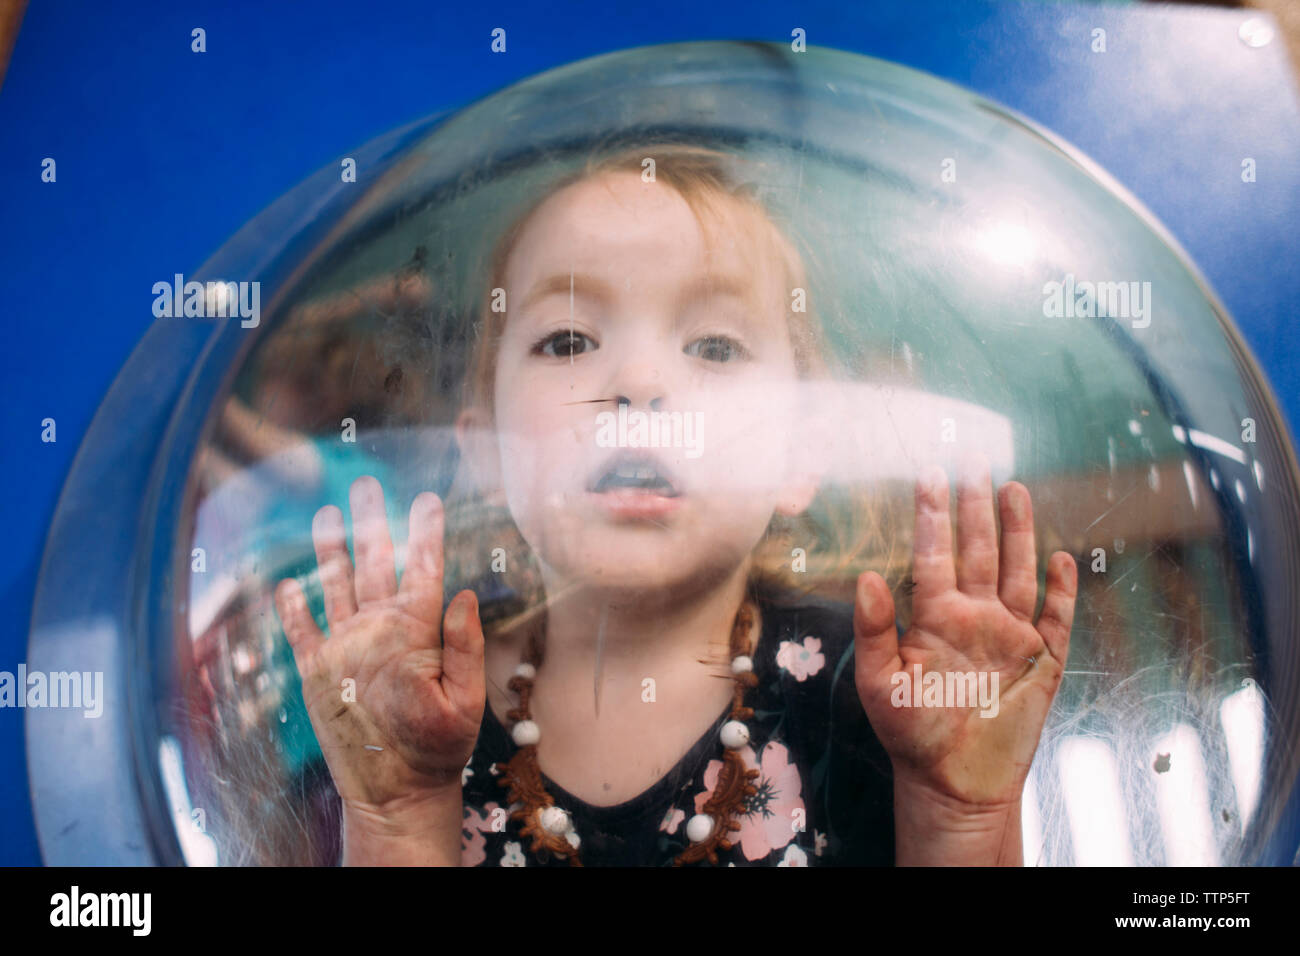 Portrait of girl looking through outdoor play equipment - Stock Image